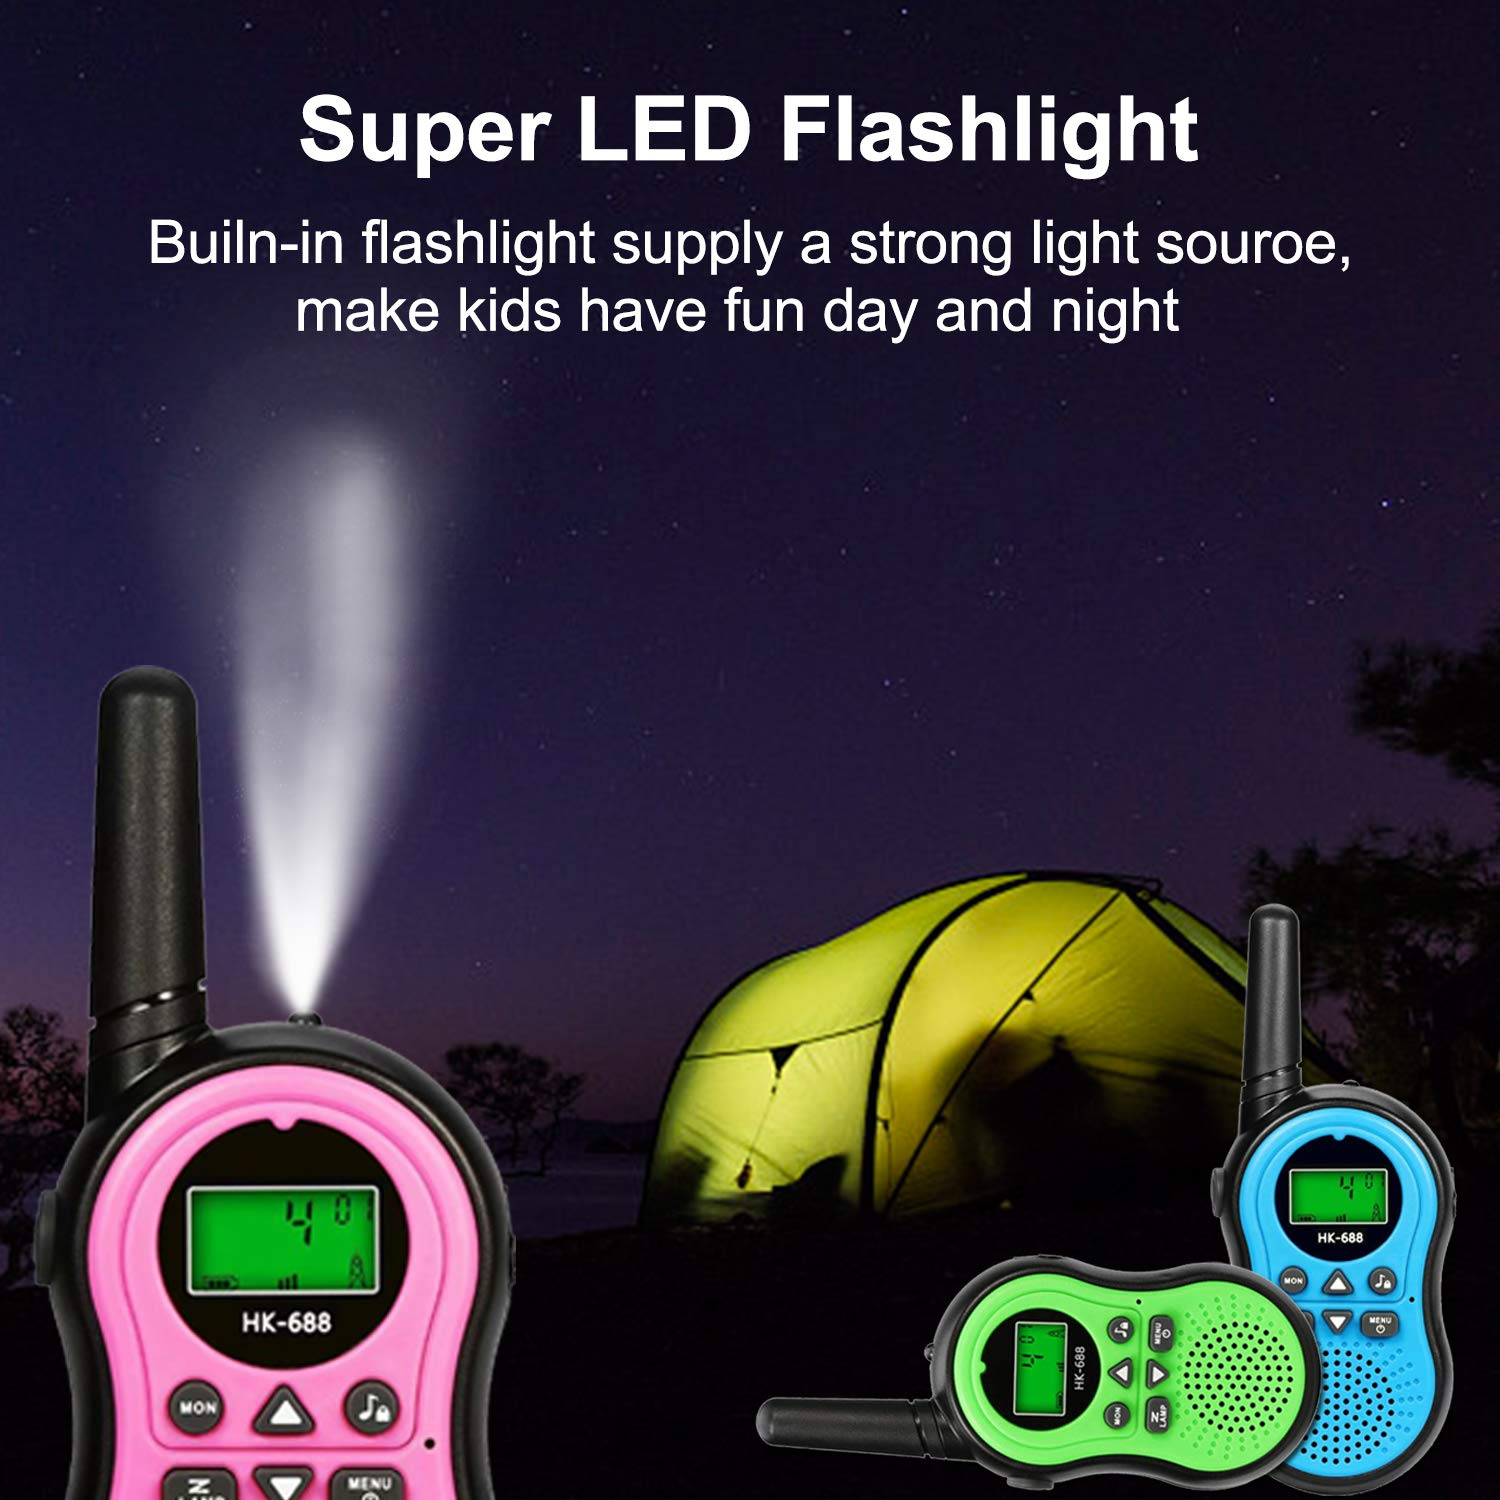 6 Pack Kids Walkie Talkies Outdoor Indoor Toys for Boy Girl 22 Channels Two Way Range Up to 3 Miles Flashlight FRS Radio Handheld Walkie Talkie Adventure Camping Game Back to School Birthday Best Gift by Camlinbo (Image #5)